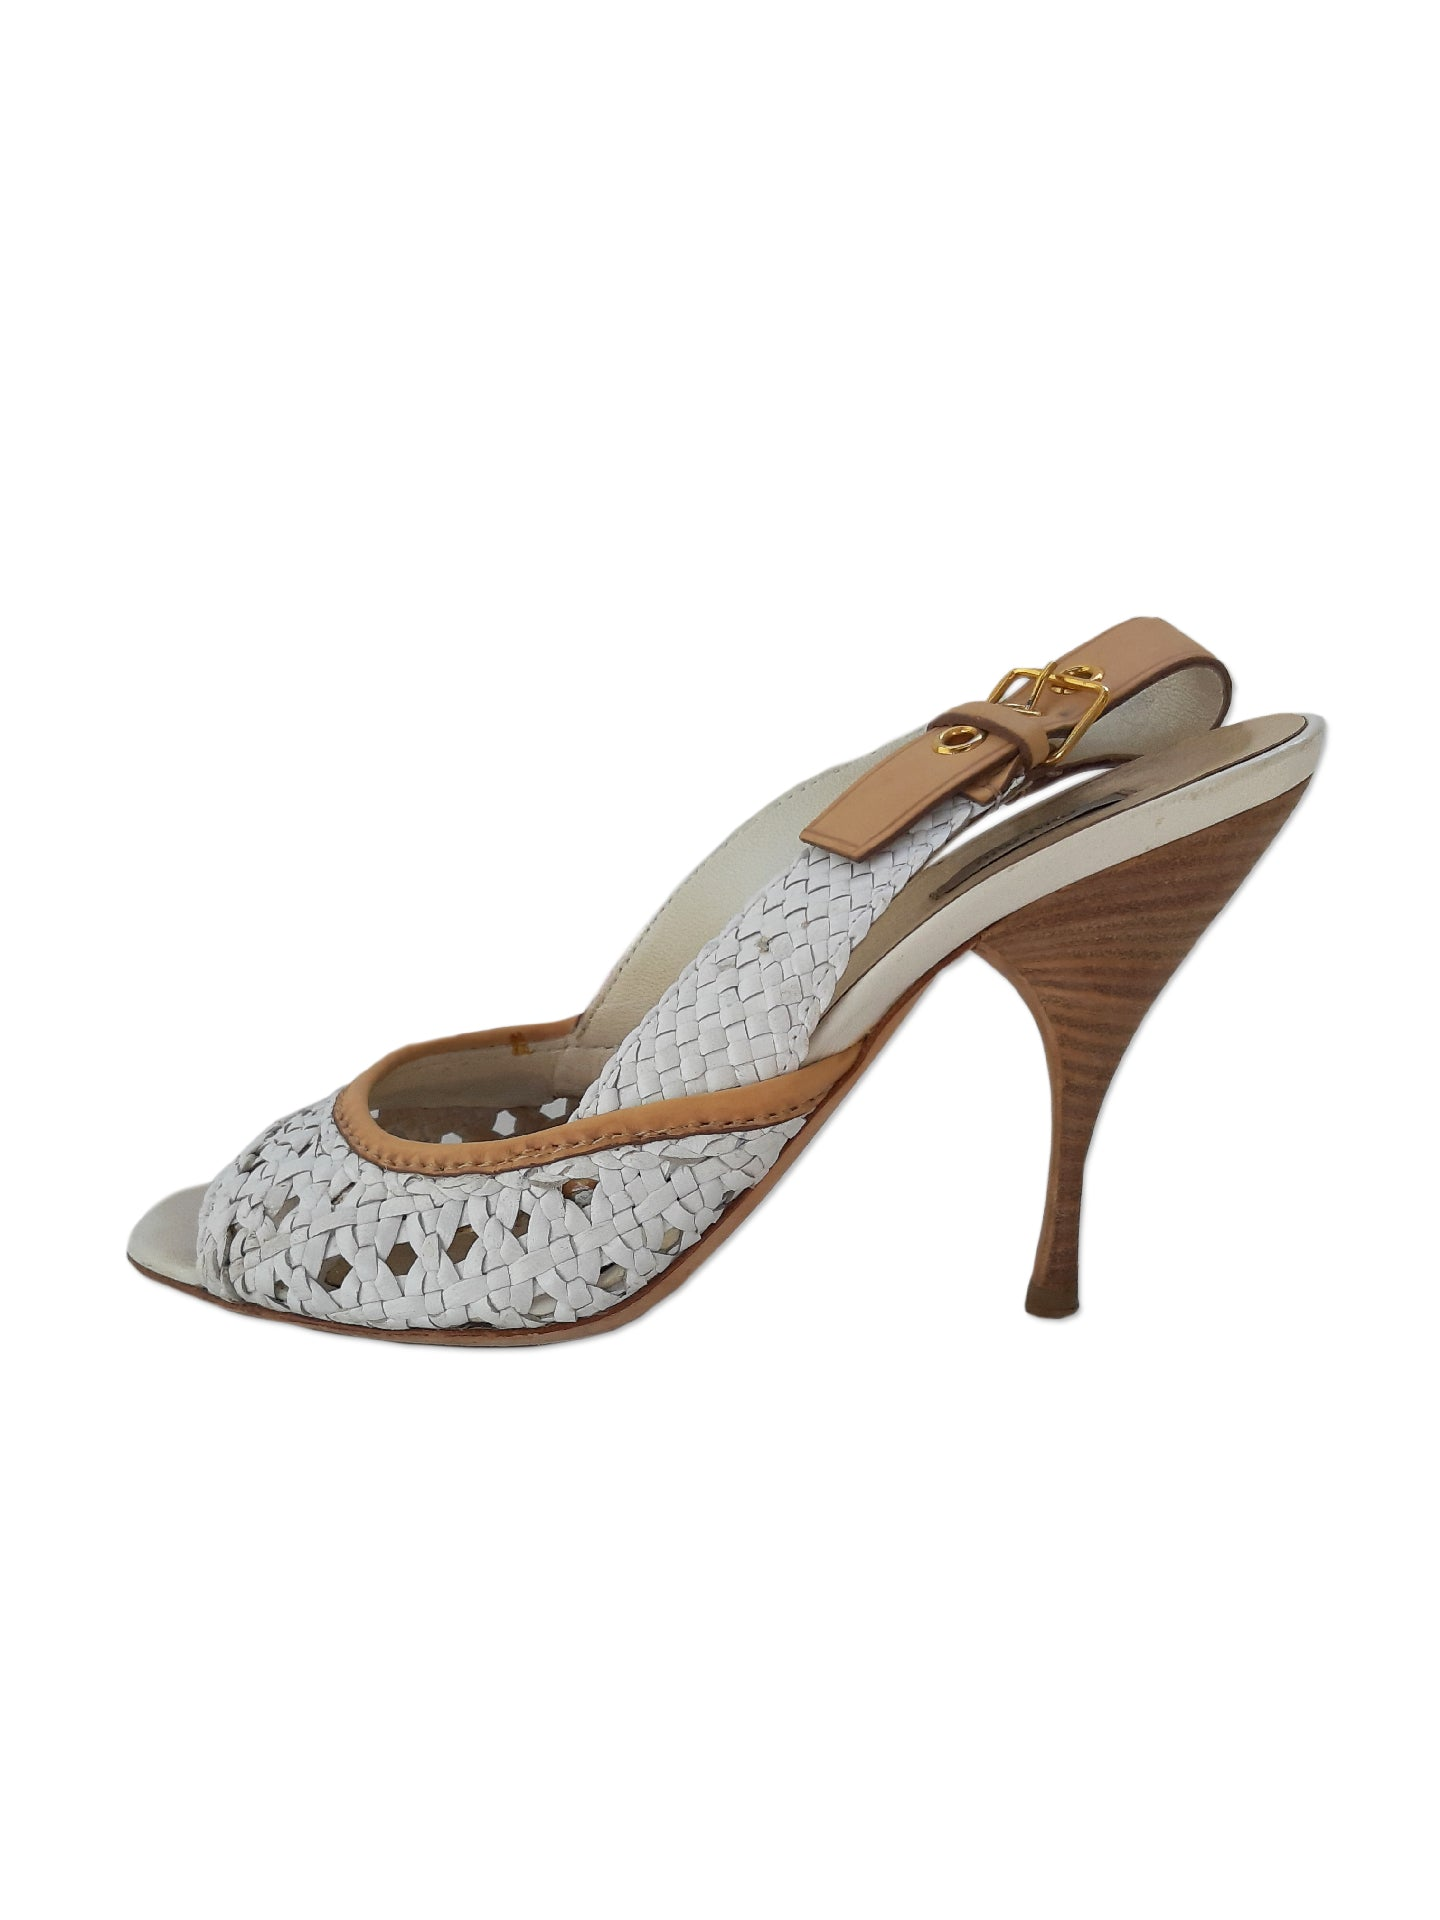 Miu Miu White and Beige Sandals Size 36,5 (EU)